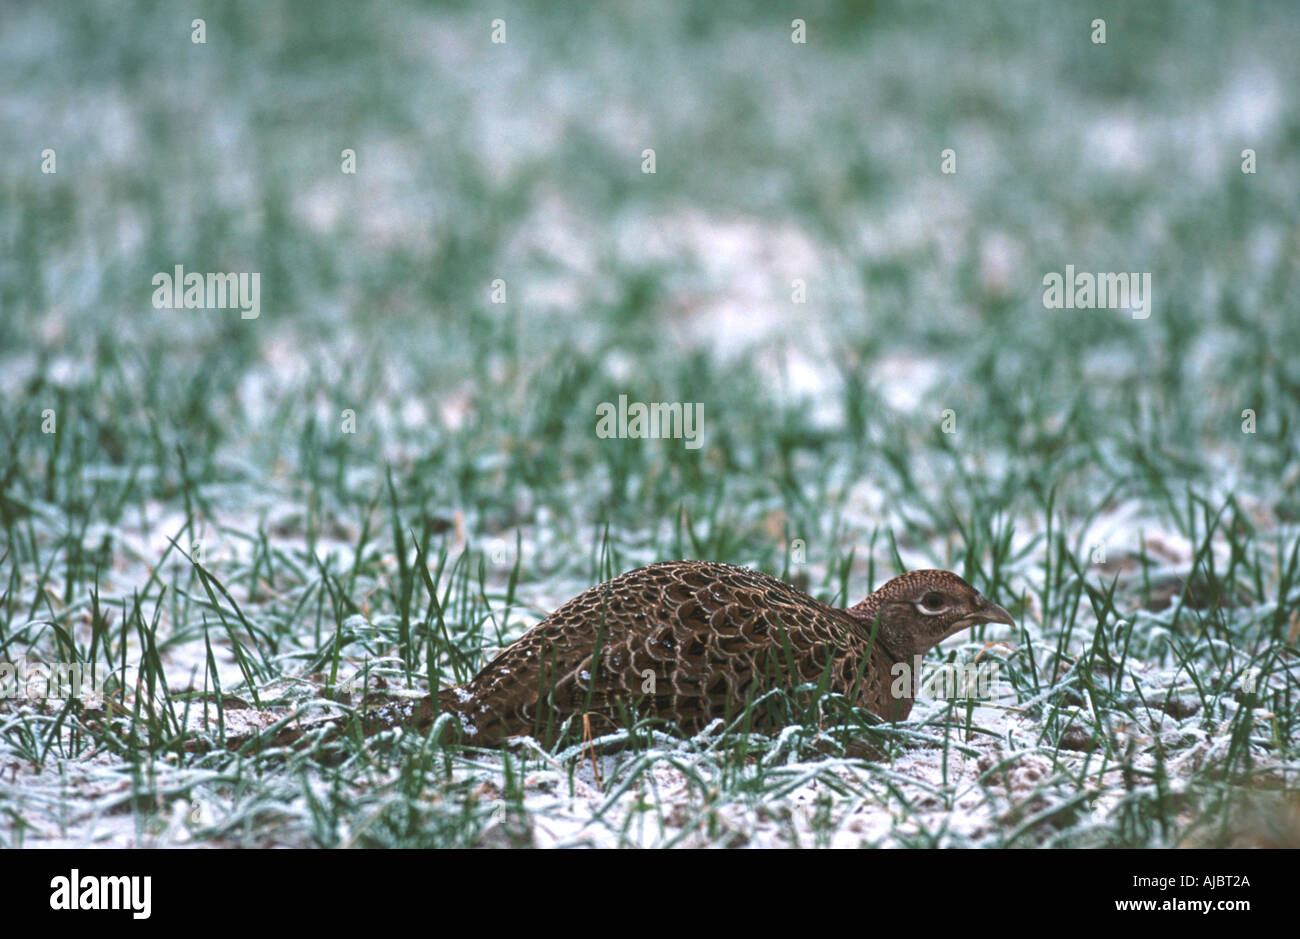 Pheasants In Snow Stock Photos & Pheasants In Snow Stock Images - Alamy